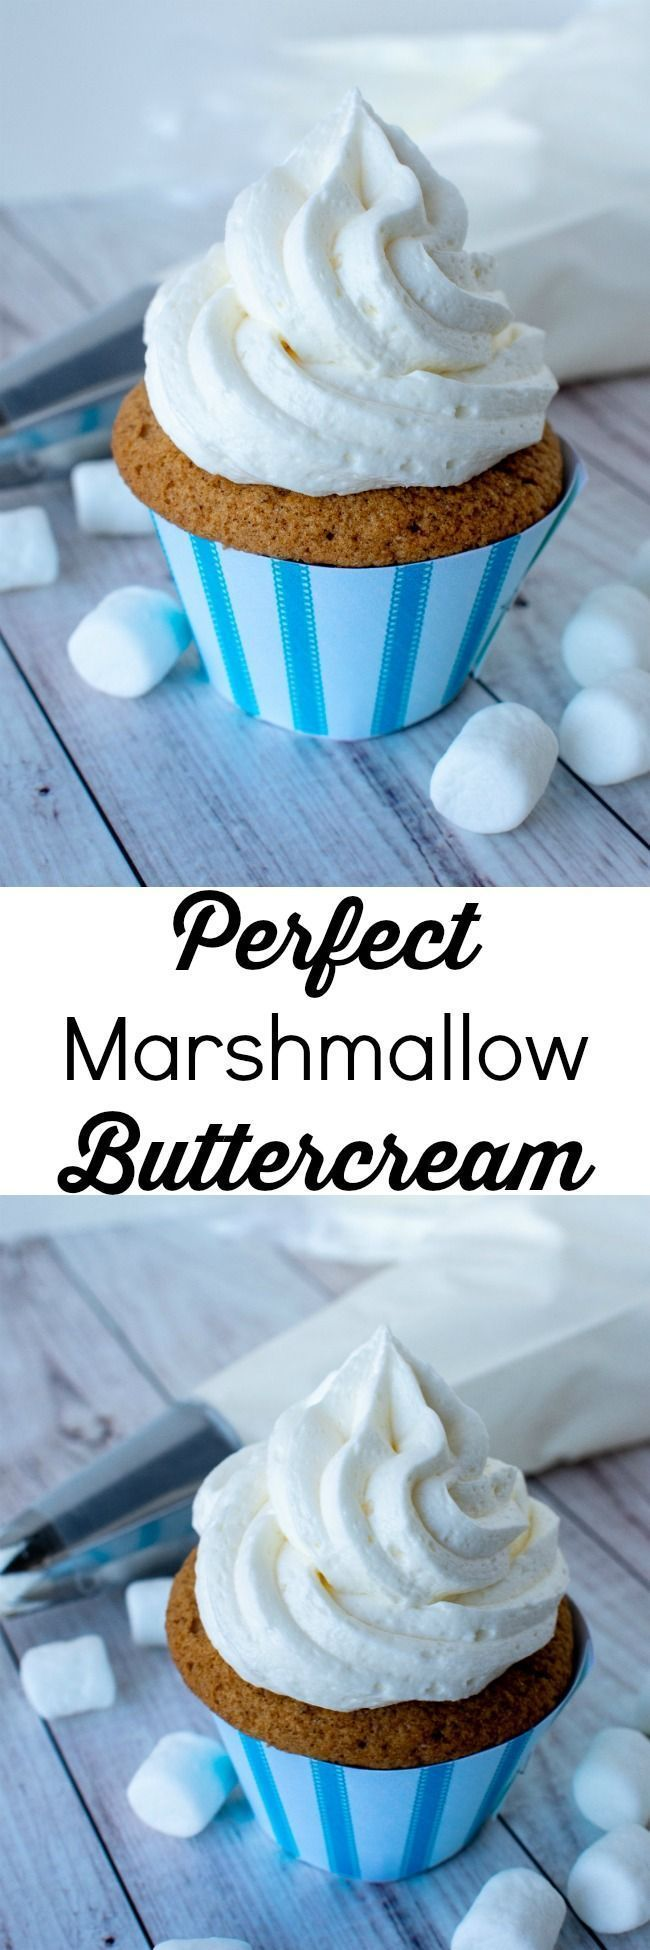 Perfect Marshmallow Buttercream Frosting #marshmallows